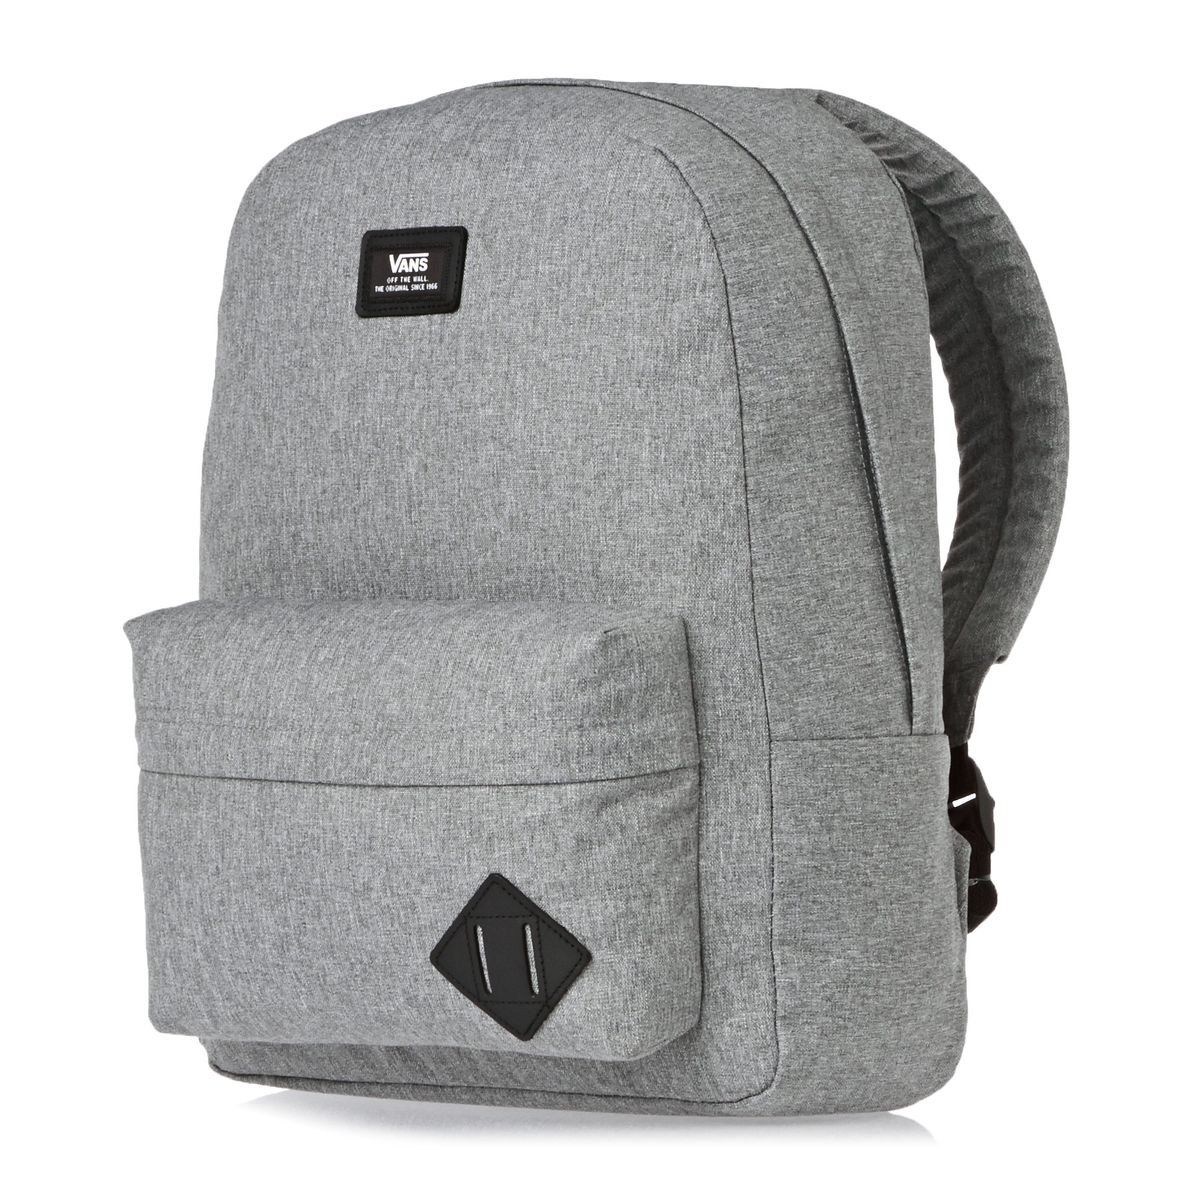 Amazon.com: Vans Old Skool II Logo Grey Backpack: VANS: Sports & Outdoors